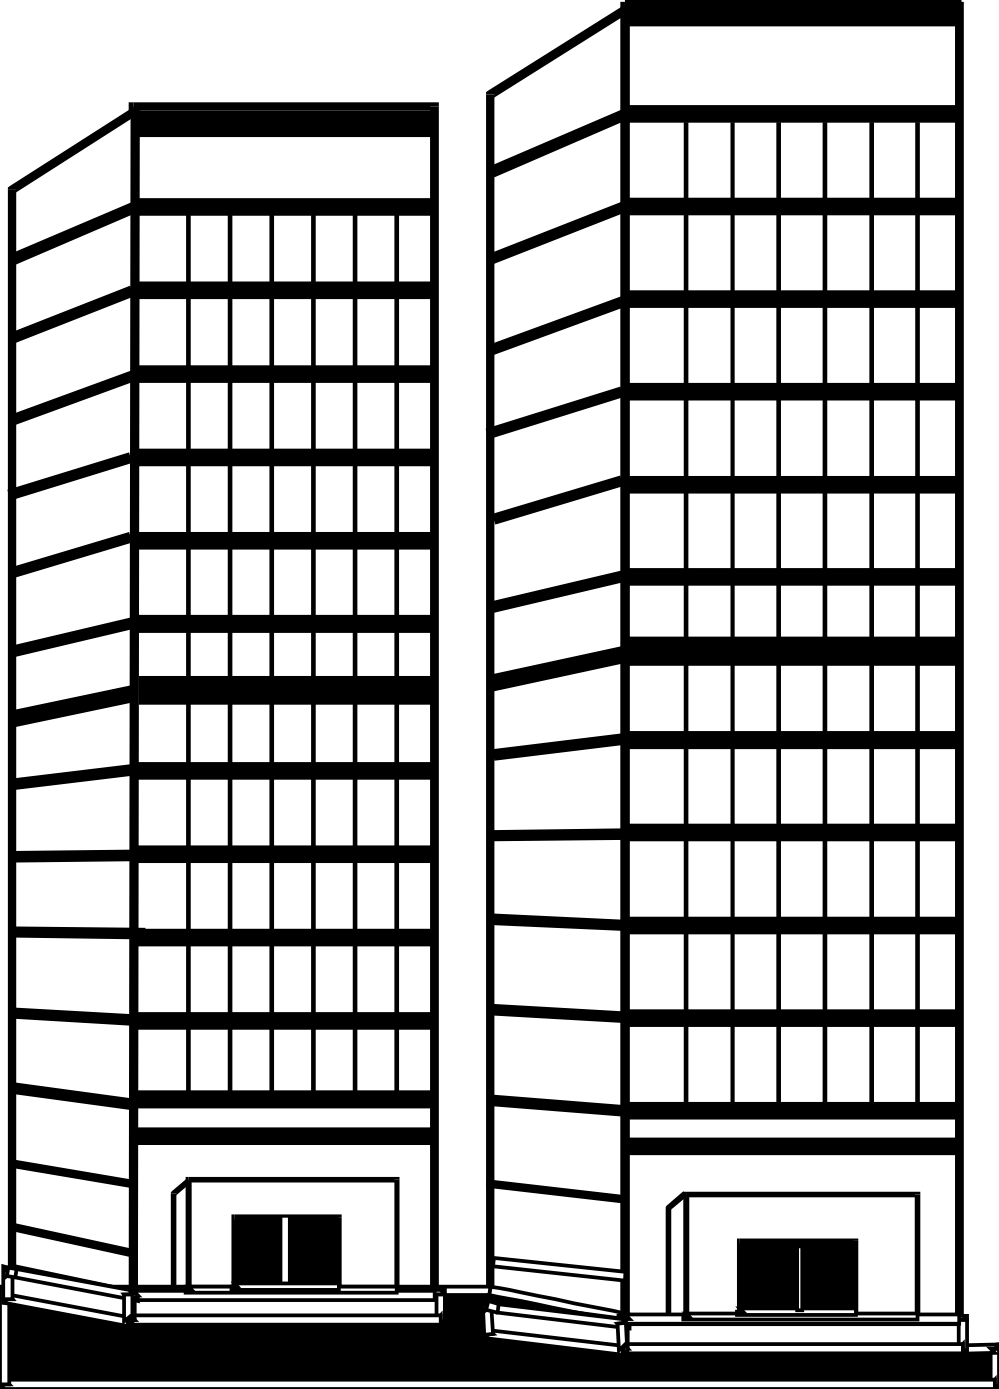 Office building clipart black and white png svg black and white library Office building clipart black and white png - ClipartFest svg black and white library